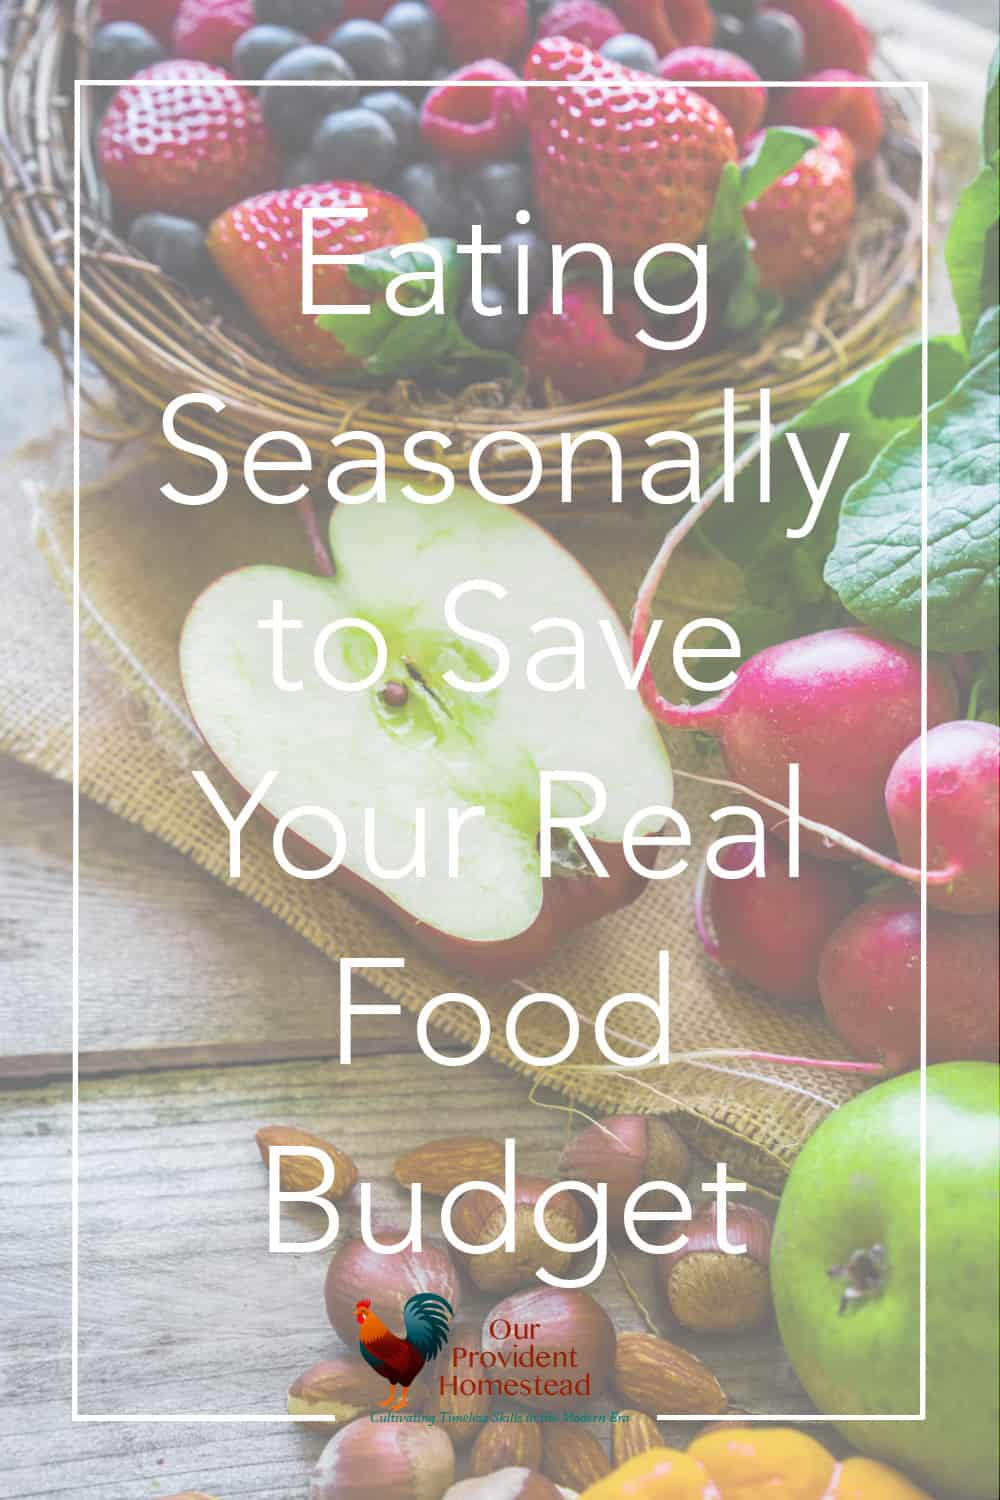 Do you want to cut down on your real food budget? Click now to find out how eating seasonally can help your grocery budget today! #realfood #eatingseasonally #eatlocal #healthy #homesteading